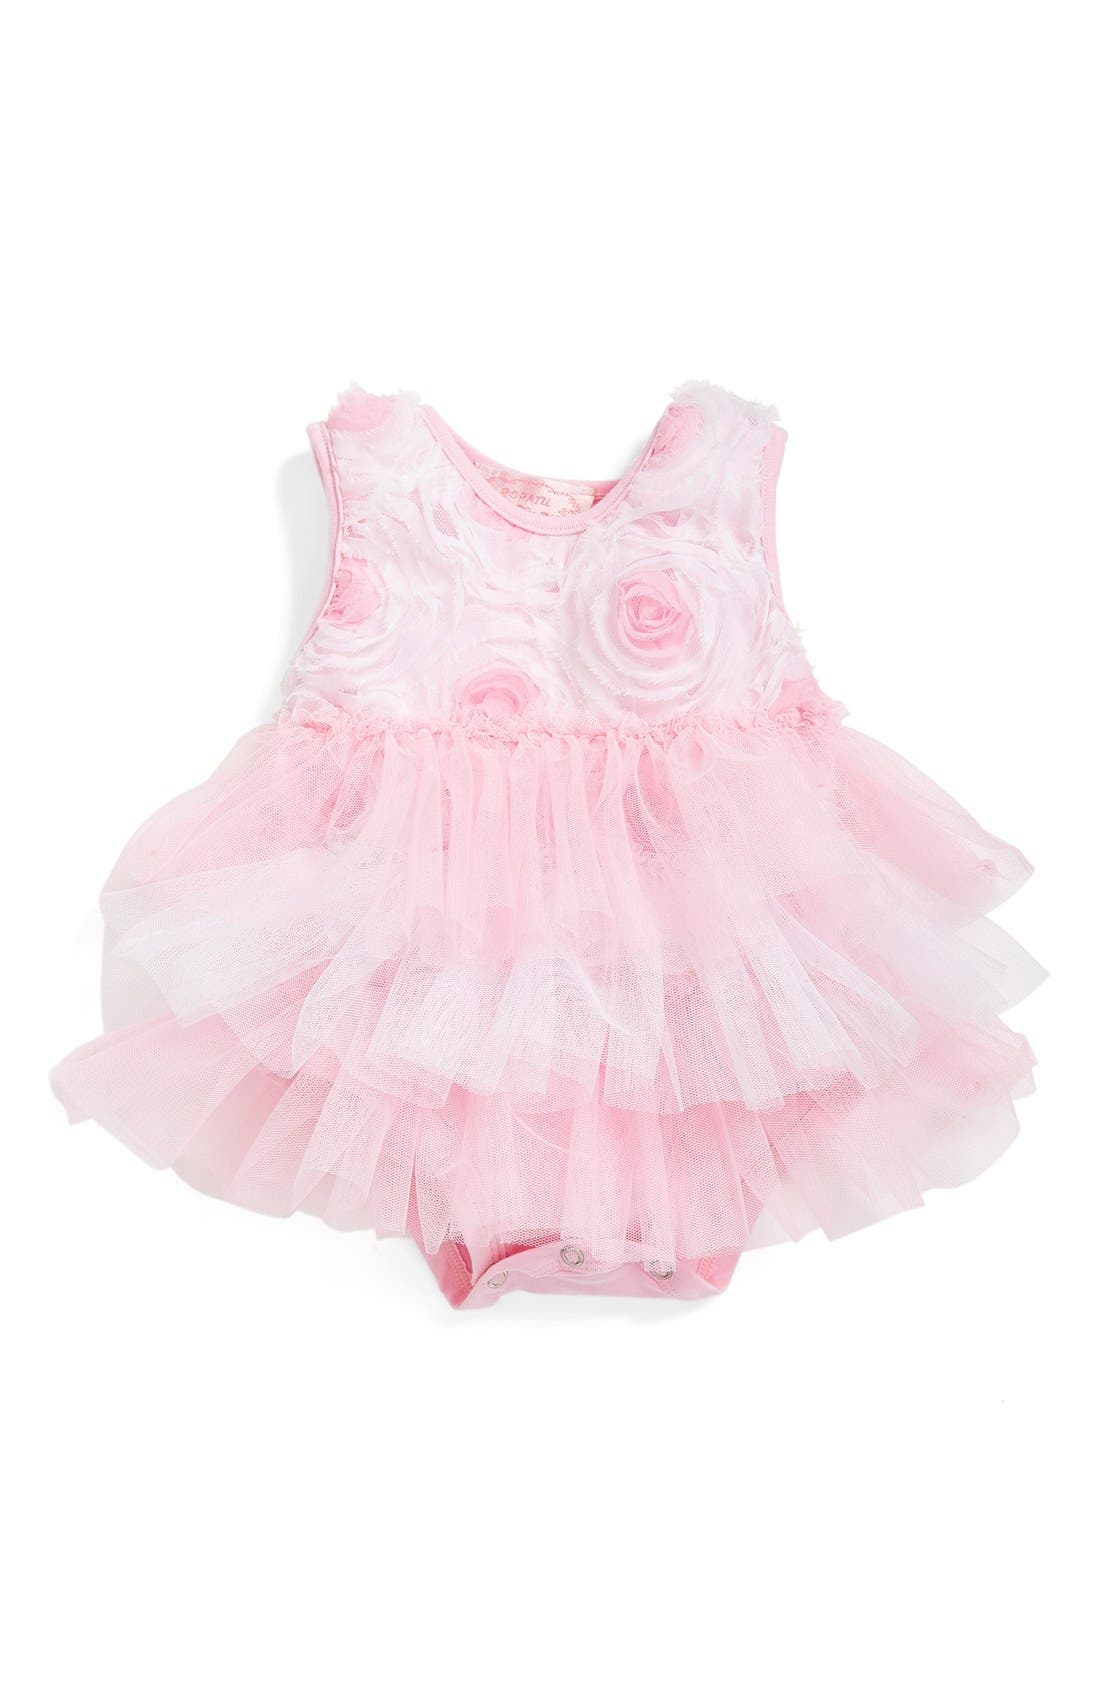 Main Image - Popatu Ribbon Rosette Ruffle Tier Bodysuit (Baby Girls)